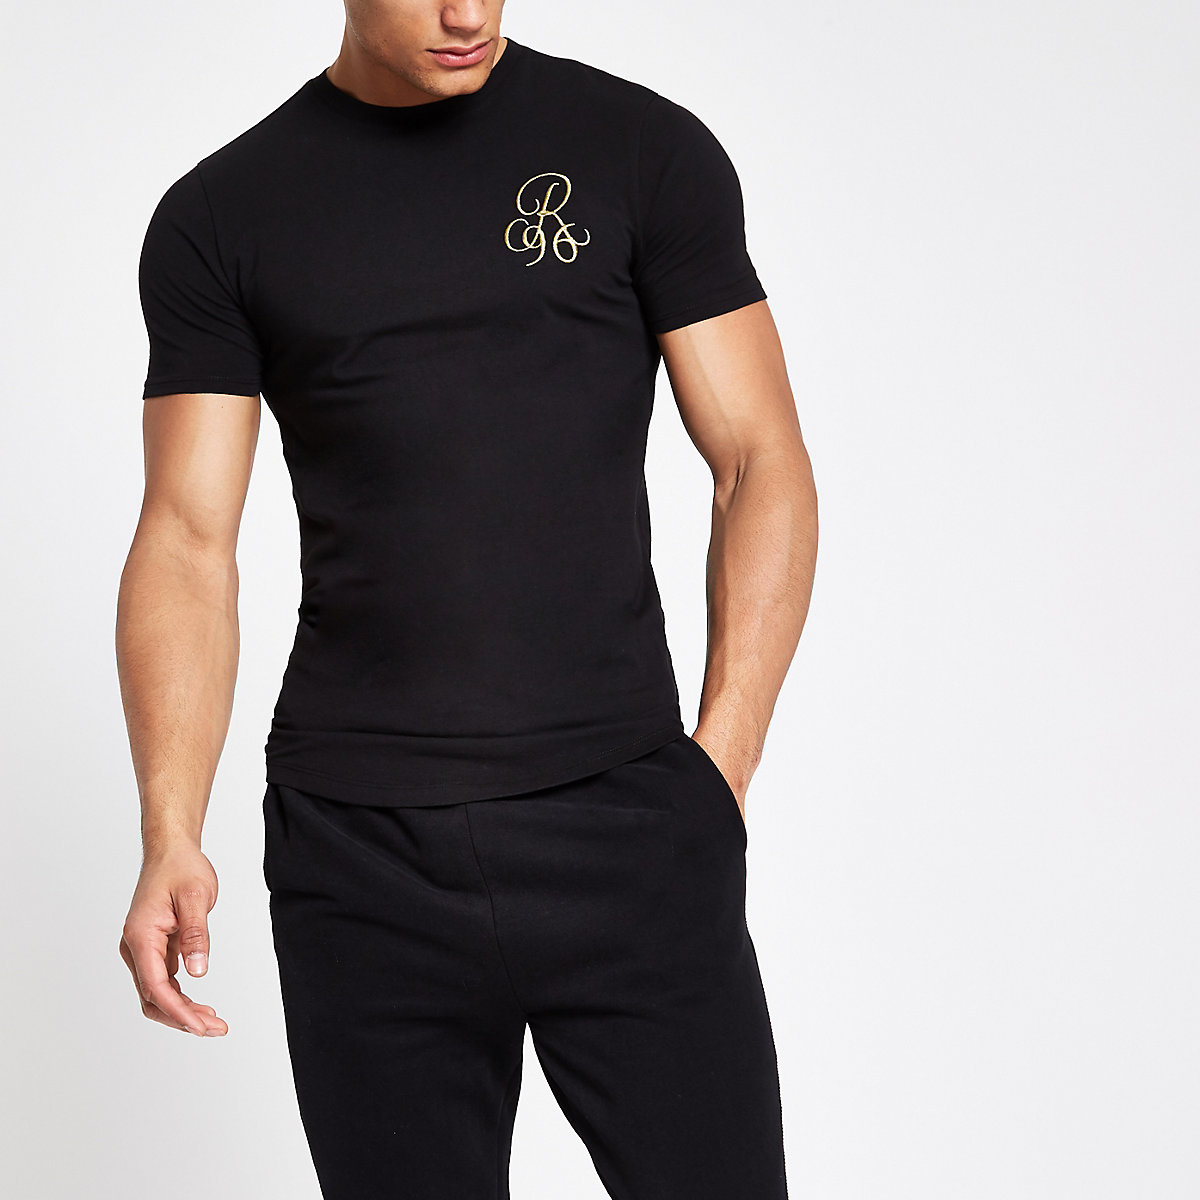 Black R96 muscle fit T-shirt